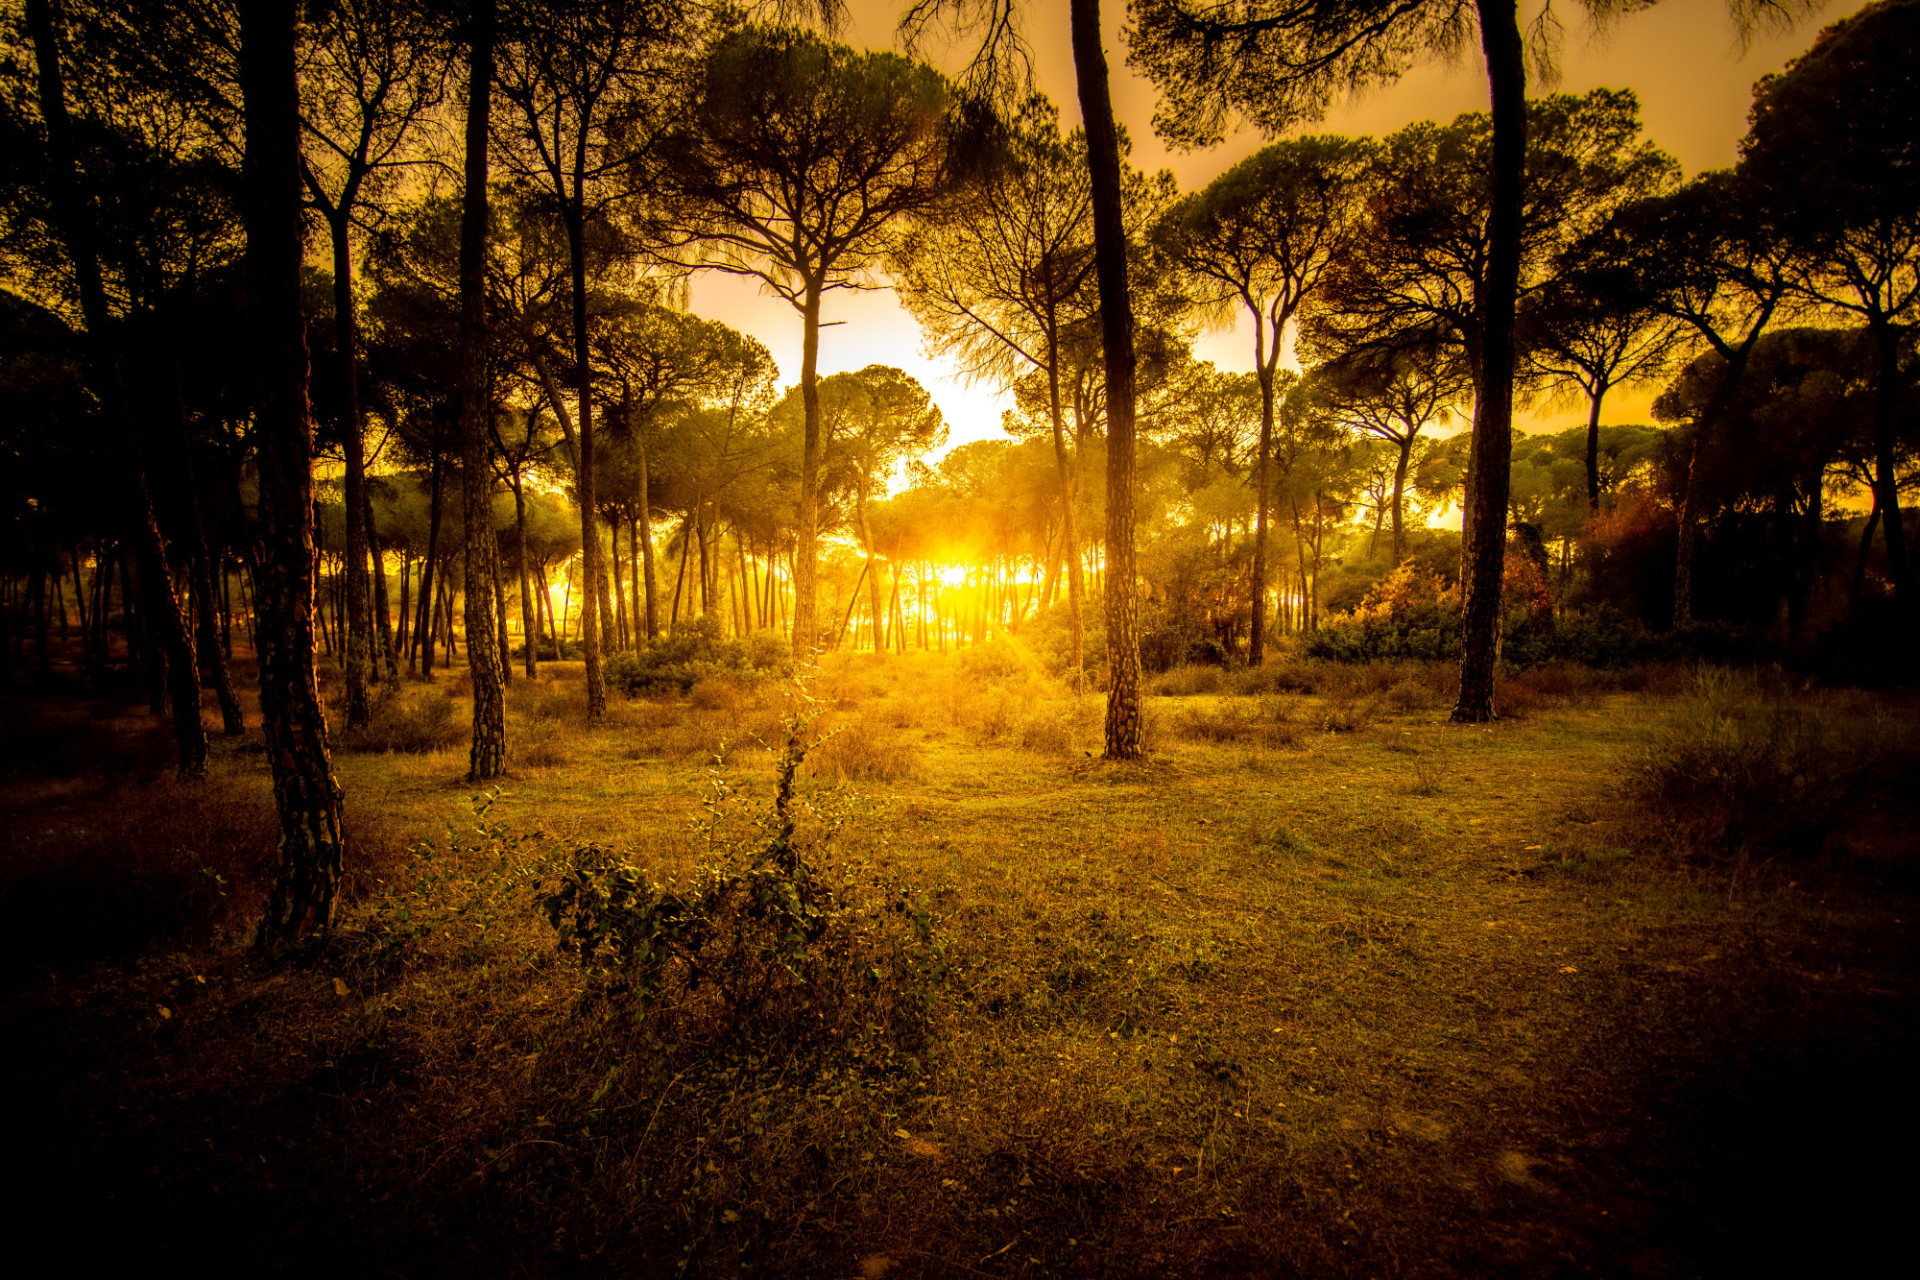 Andalusia forest landscape golden sunset